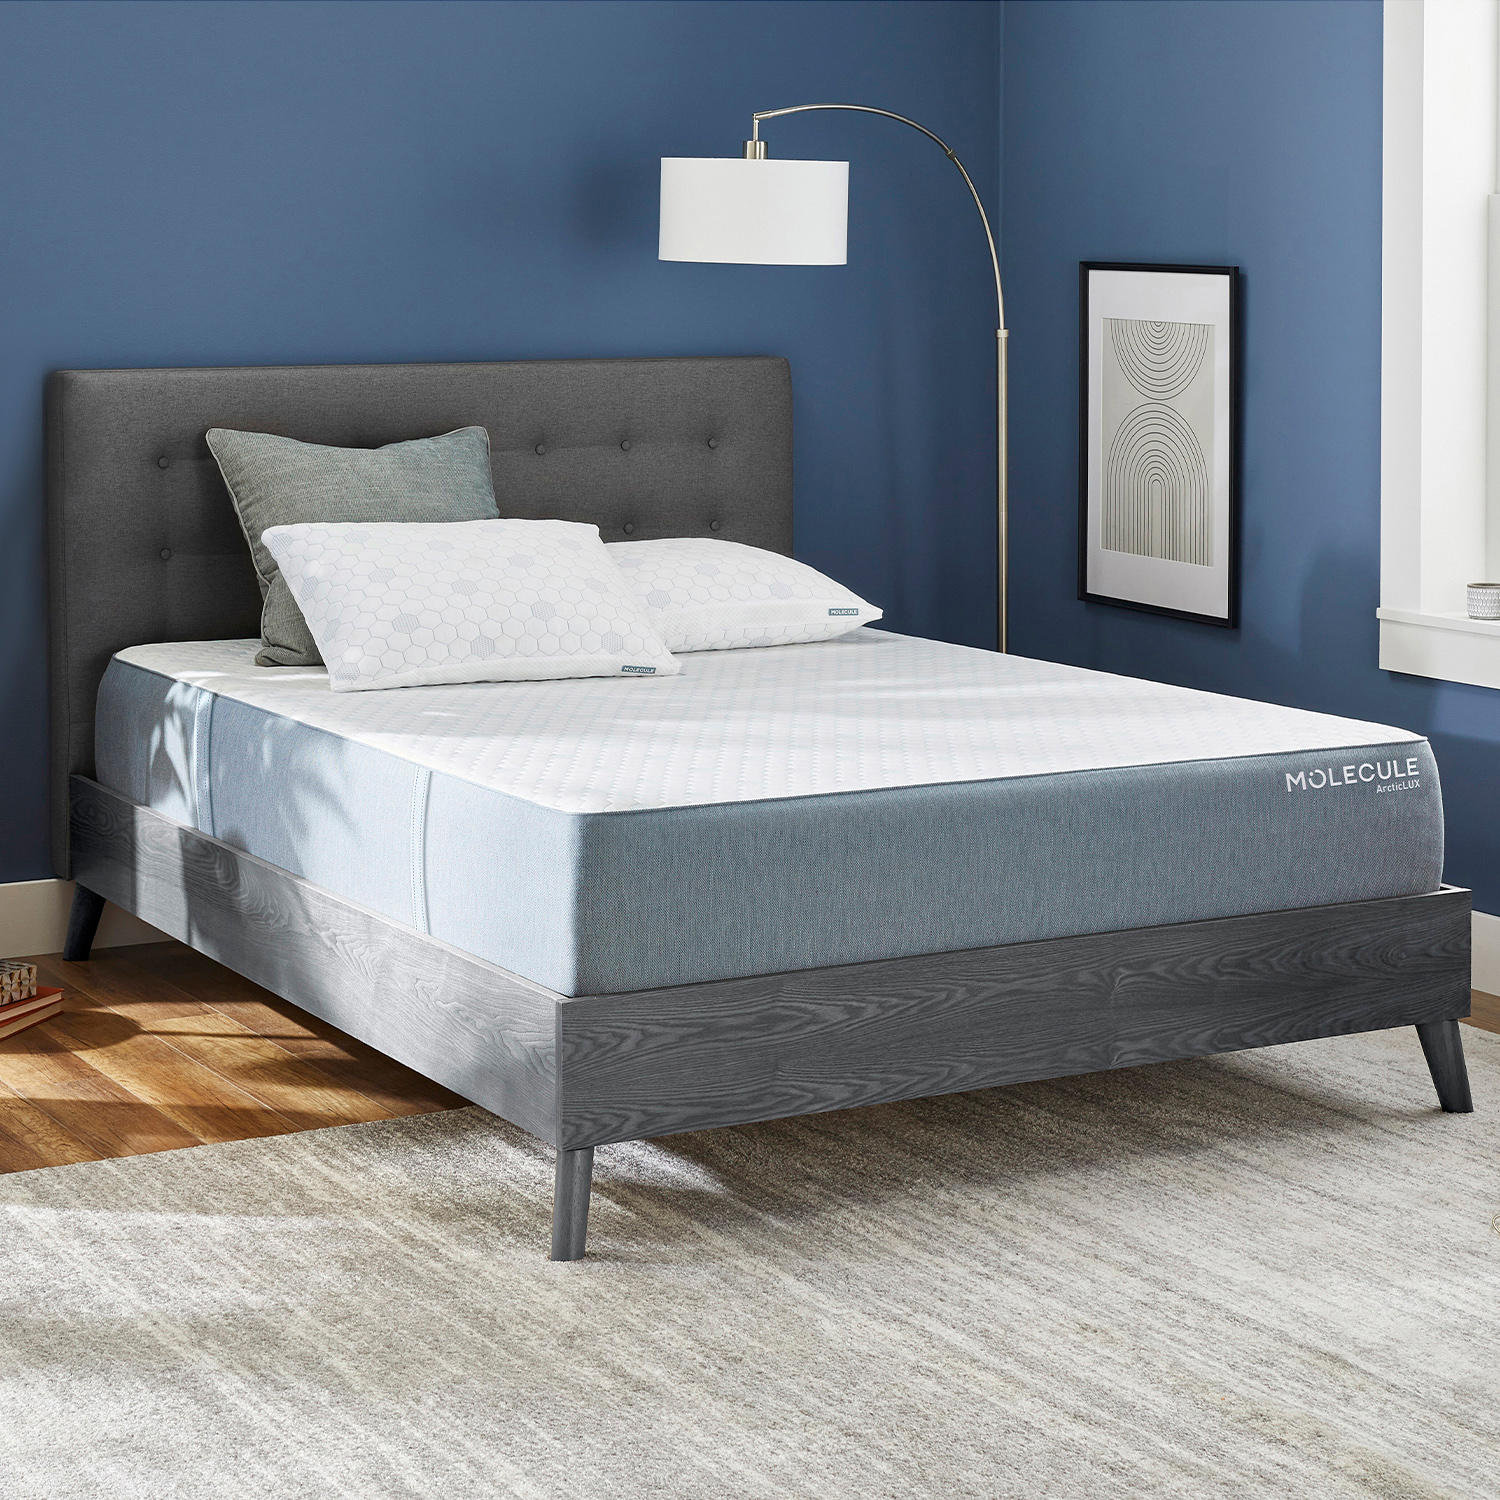 Molecule ArcticLUX 12 Inch Cooling Antimicrobial Twin Mattress